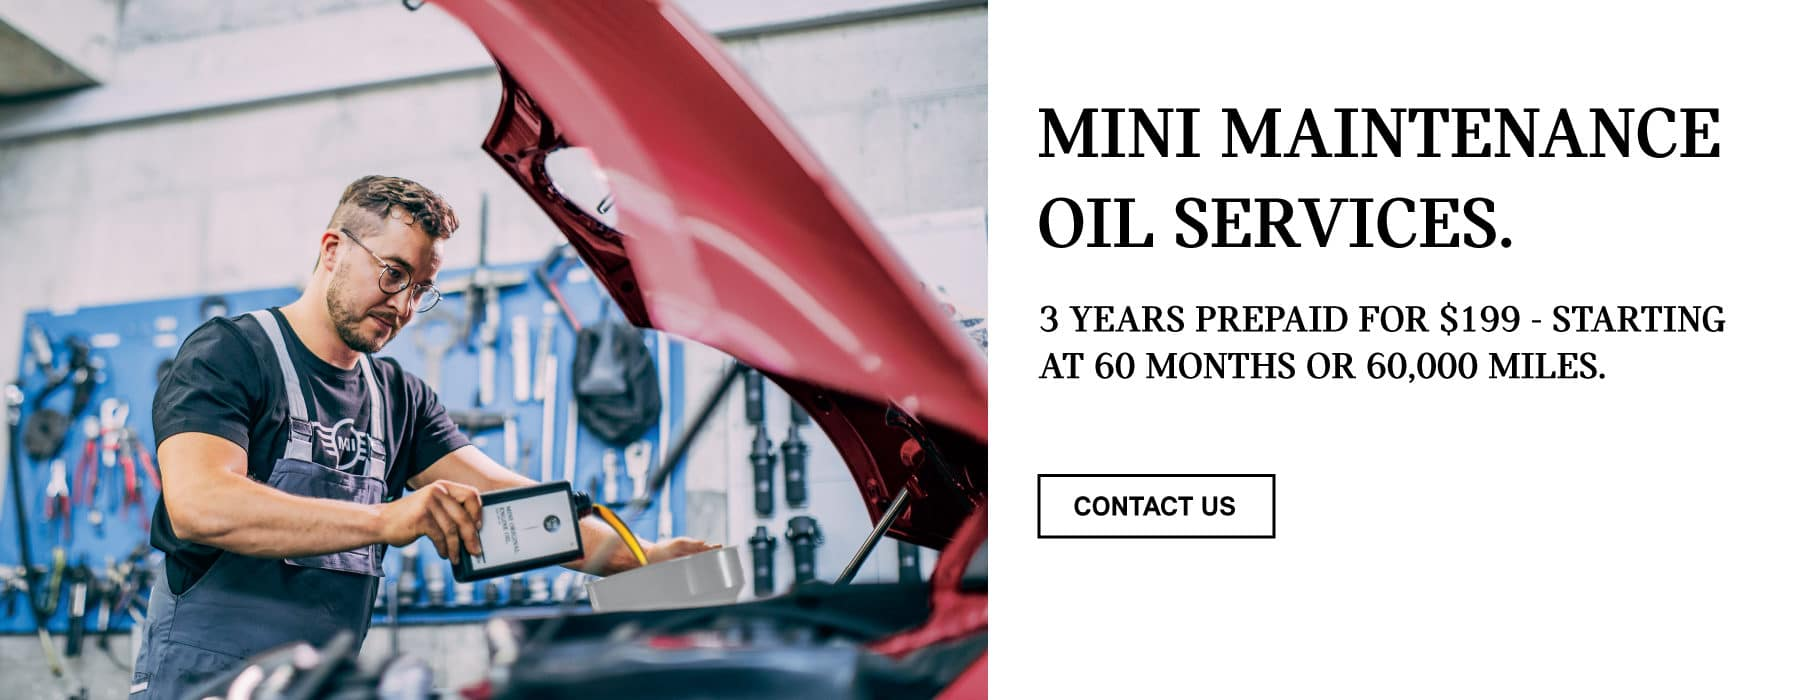 MINI MAINTENANCE OIL SERVICES. 3 YEARS PREPAID FOR $199 - STARTING AT 60 MONTHS OR 60,000 MILES. CONTACT US BUTTON.